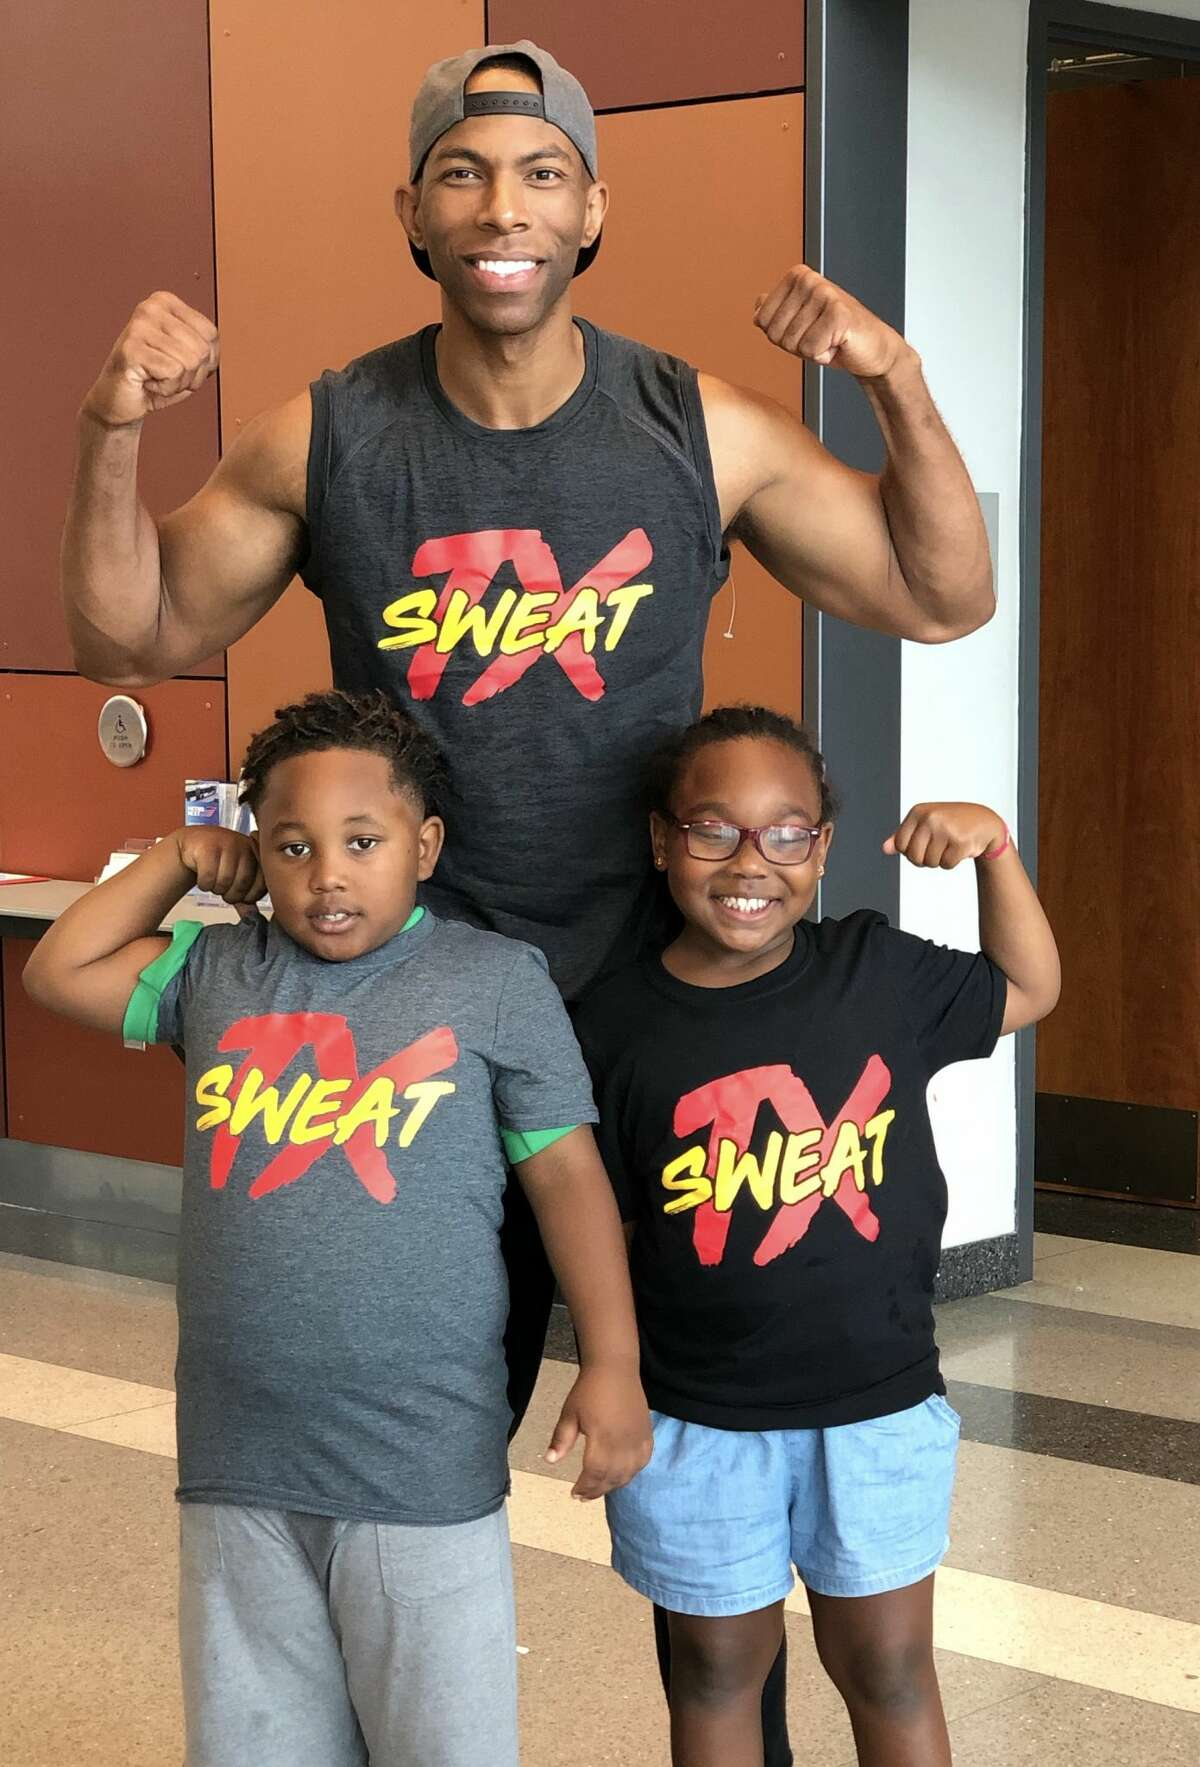 Fox 26 anchor Jonathan Martin, a fitness and dance fanatic, has partnered with the Houston Parks and Recreation Dept. on his Sweat TX effort to bring fitness workouts to children. He recently did a workout for 50 kids at Emancipation Park.